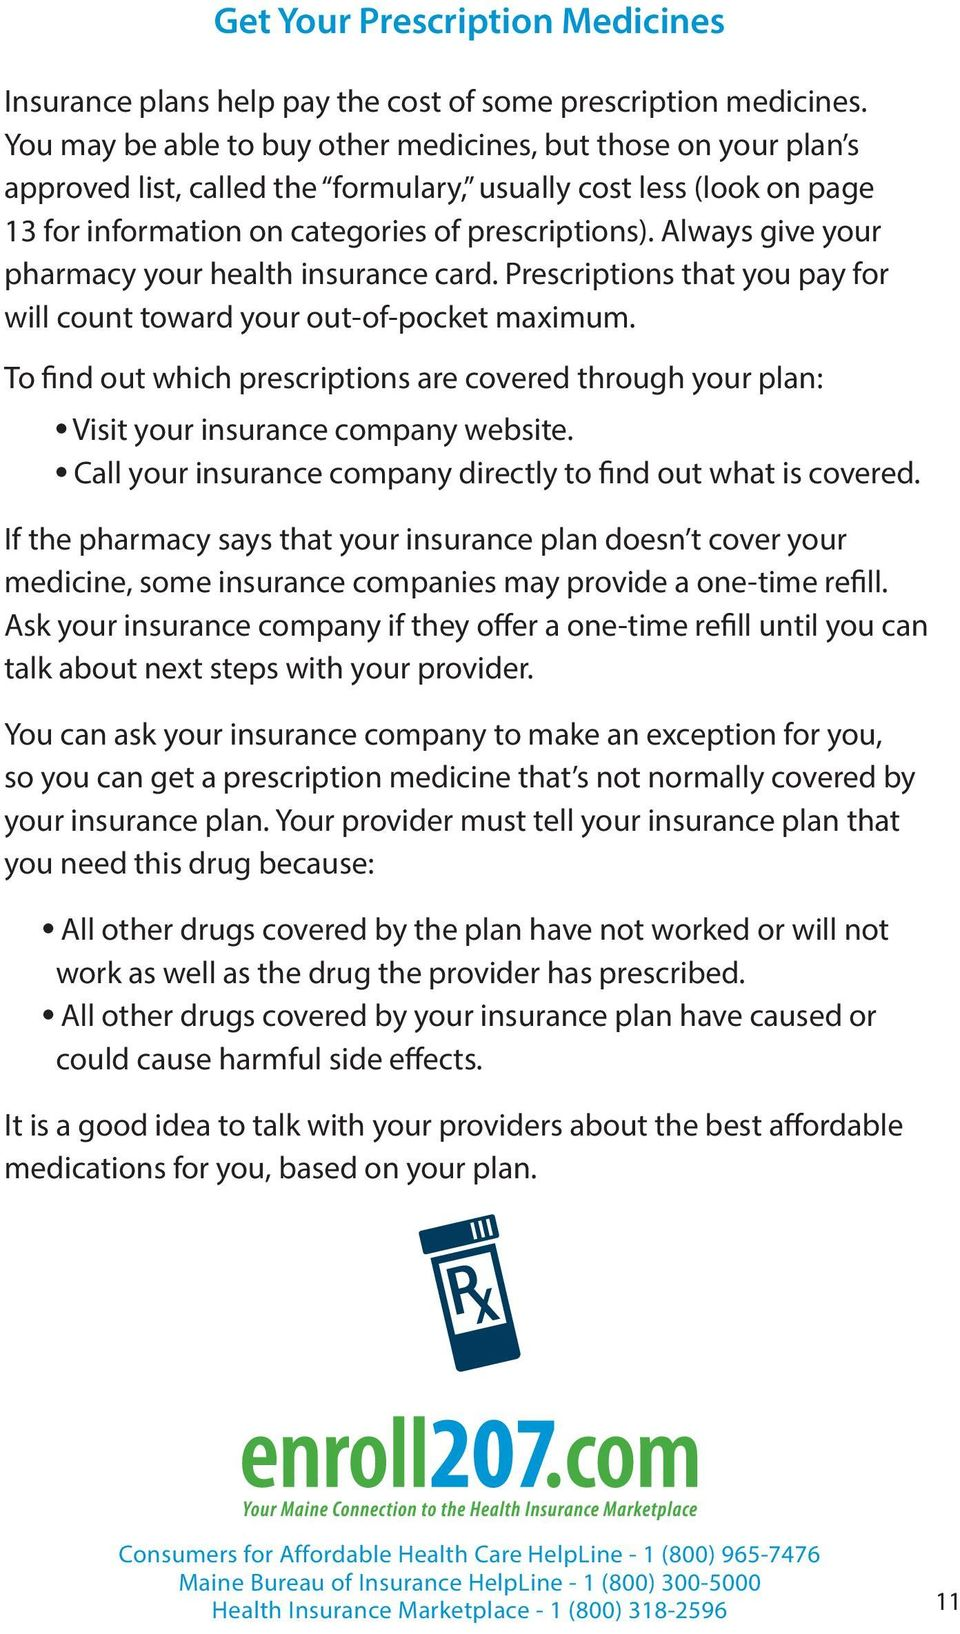 Always give your pharmacy your health insurance card. Prescriptions that you pay for will count toward your out-of-pocket maximum.